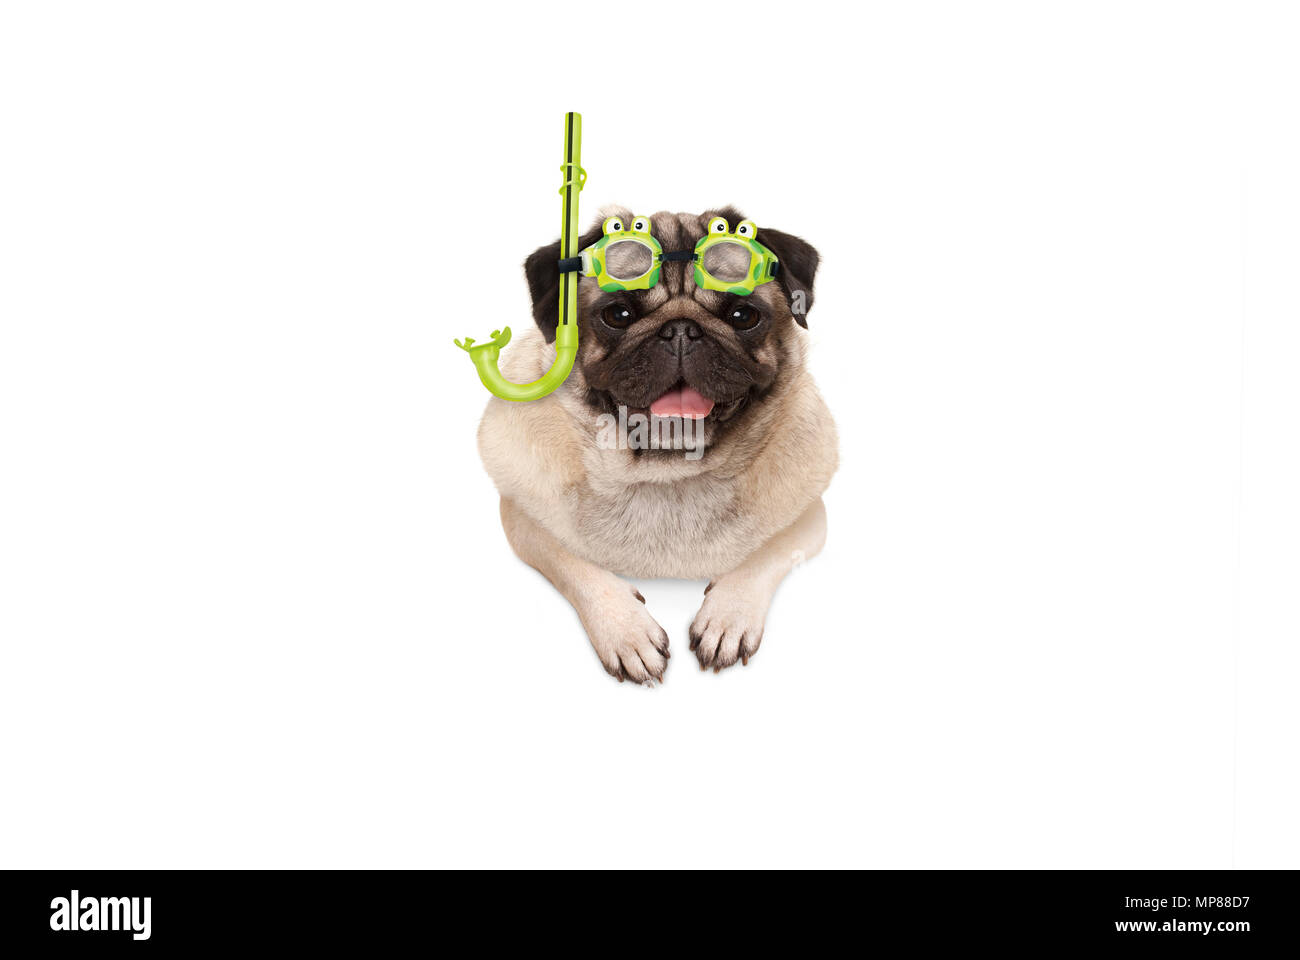 frolic smiling pug puppy dog with green snorkel and goggles, ready to dive, isolated , hanging with paws on white banner - Stock Image